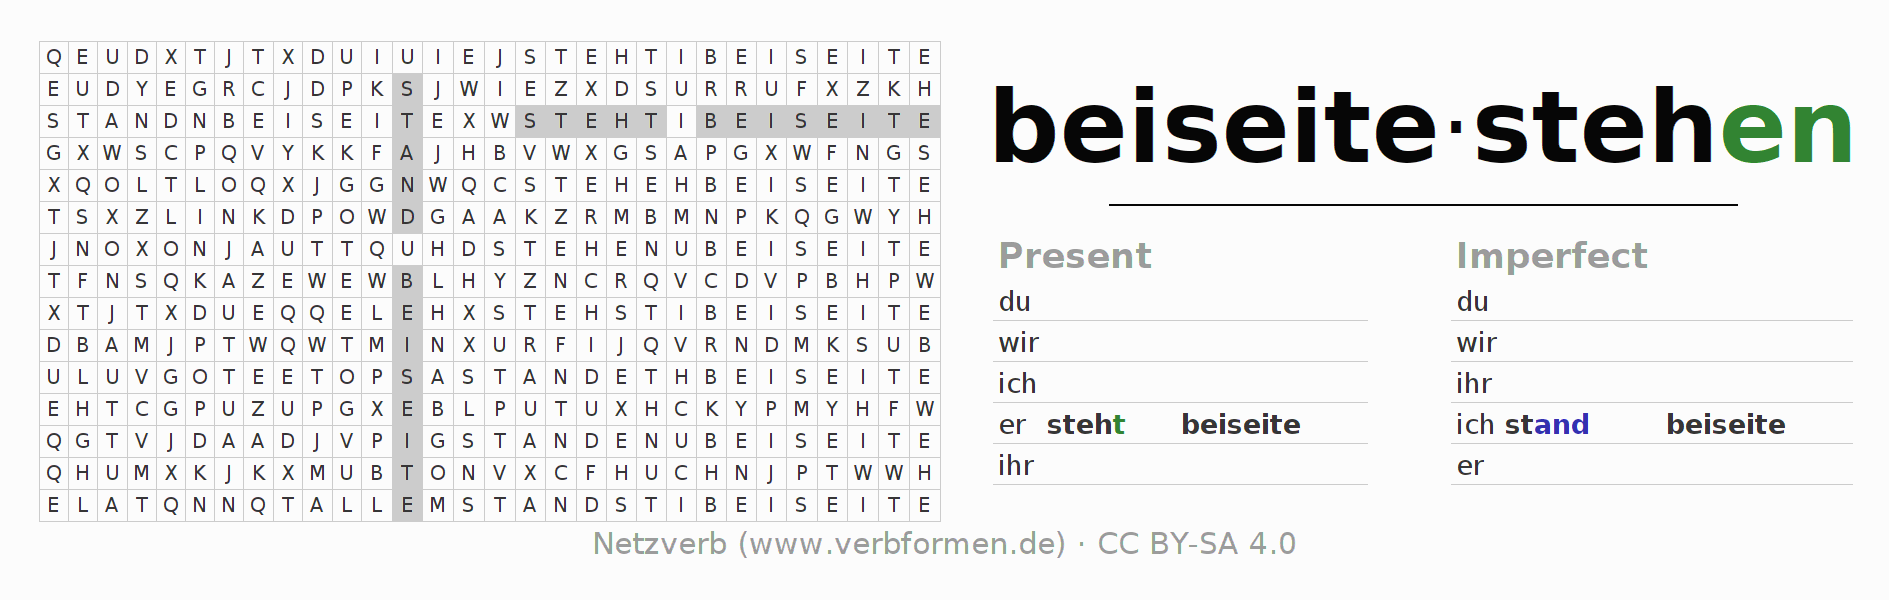 Word search puzzle for the conjugation of the verb beiseitestehen (hat)